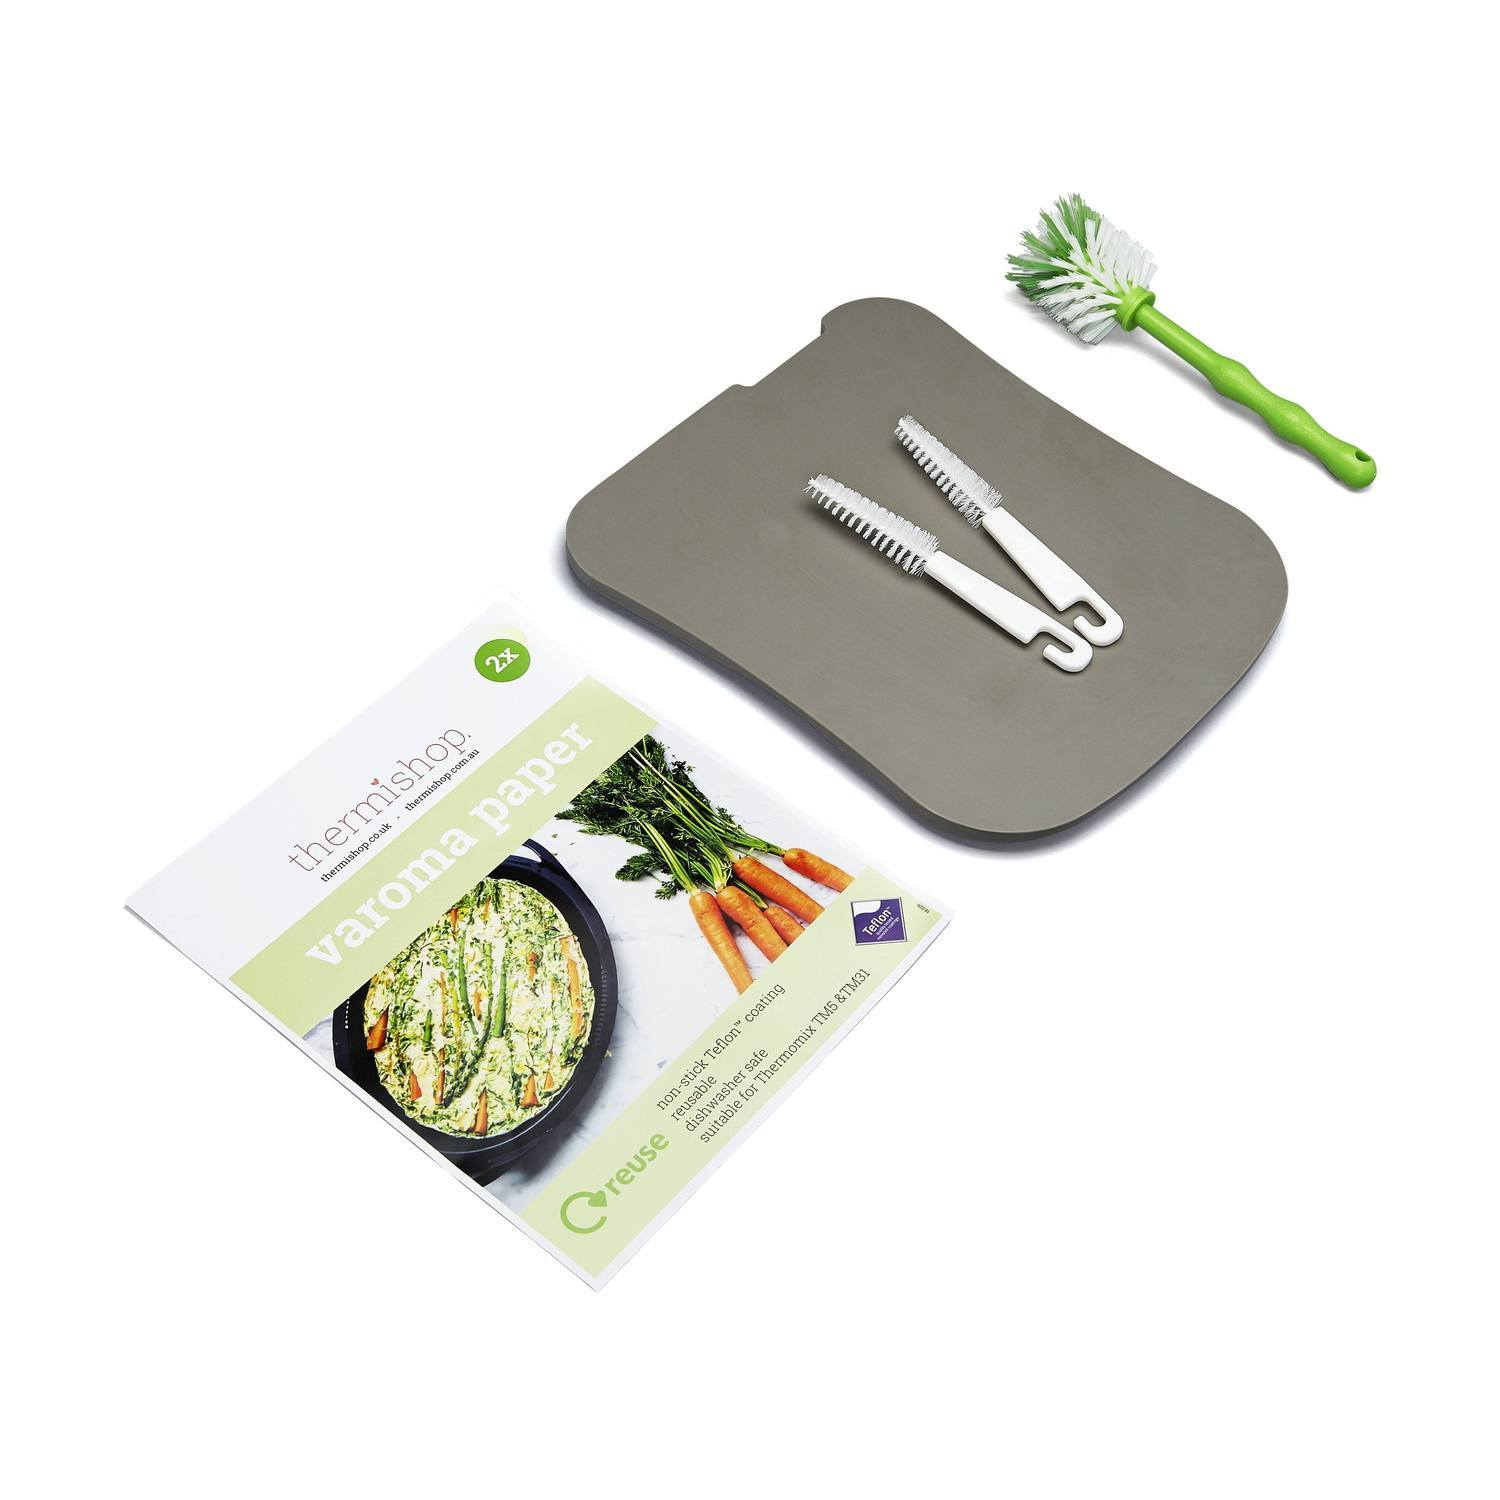 Starter Bundle for Thermomix - Grey - thermishop.com.au